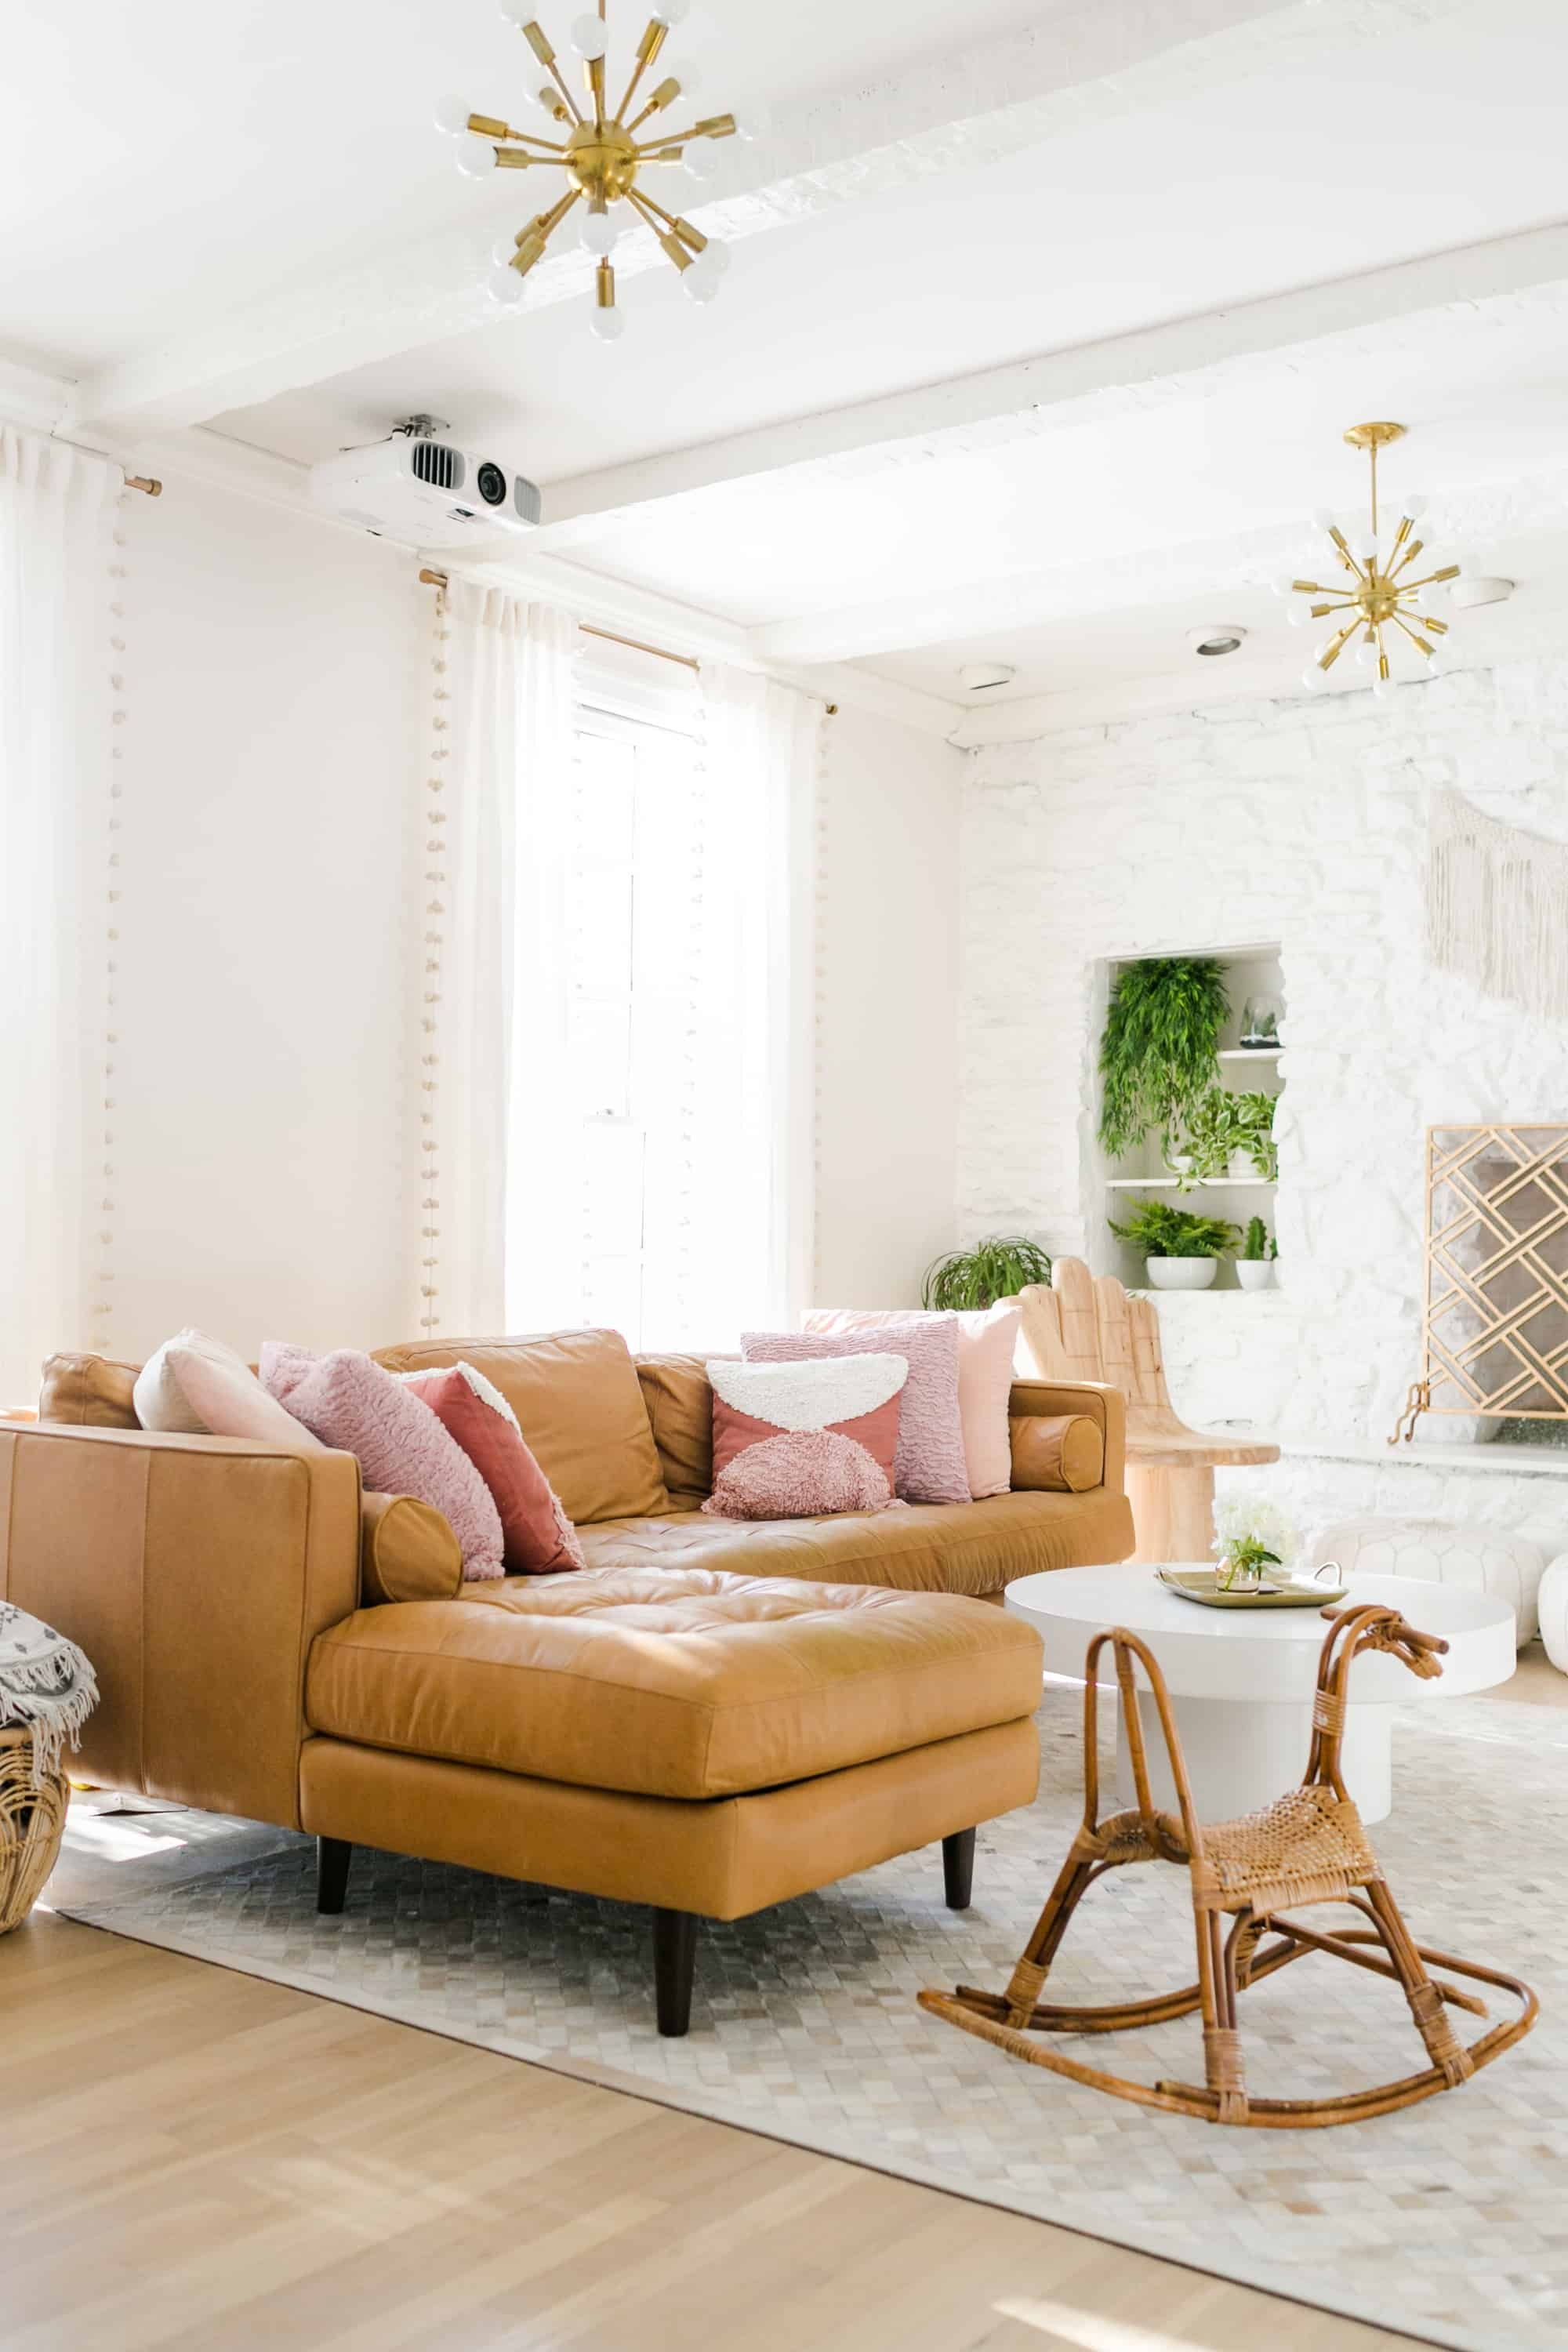 decorate your dream living room in just 10 steps! -